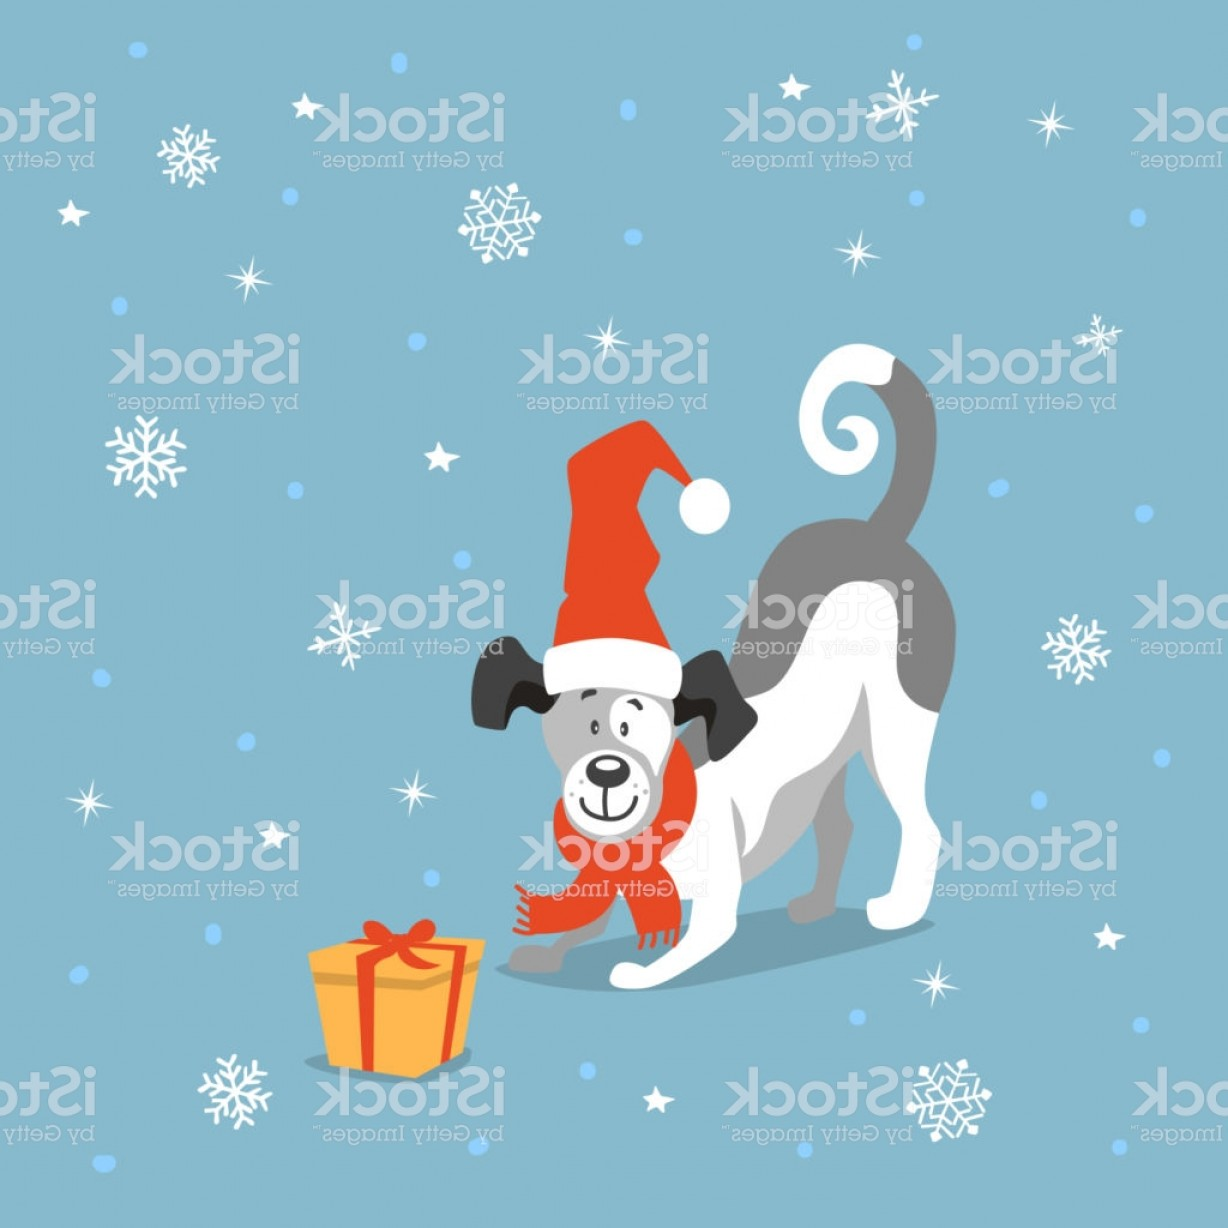 Bpxer Vector Art Happy Dog: Merry Christmas Happy New Year Cute Funny Cartoon Dog Playing With Xmas Gift Box Gm